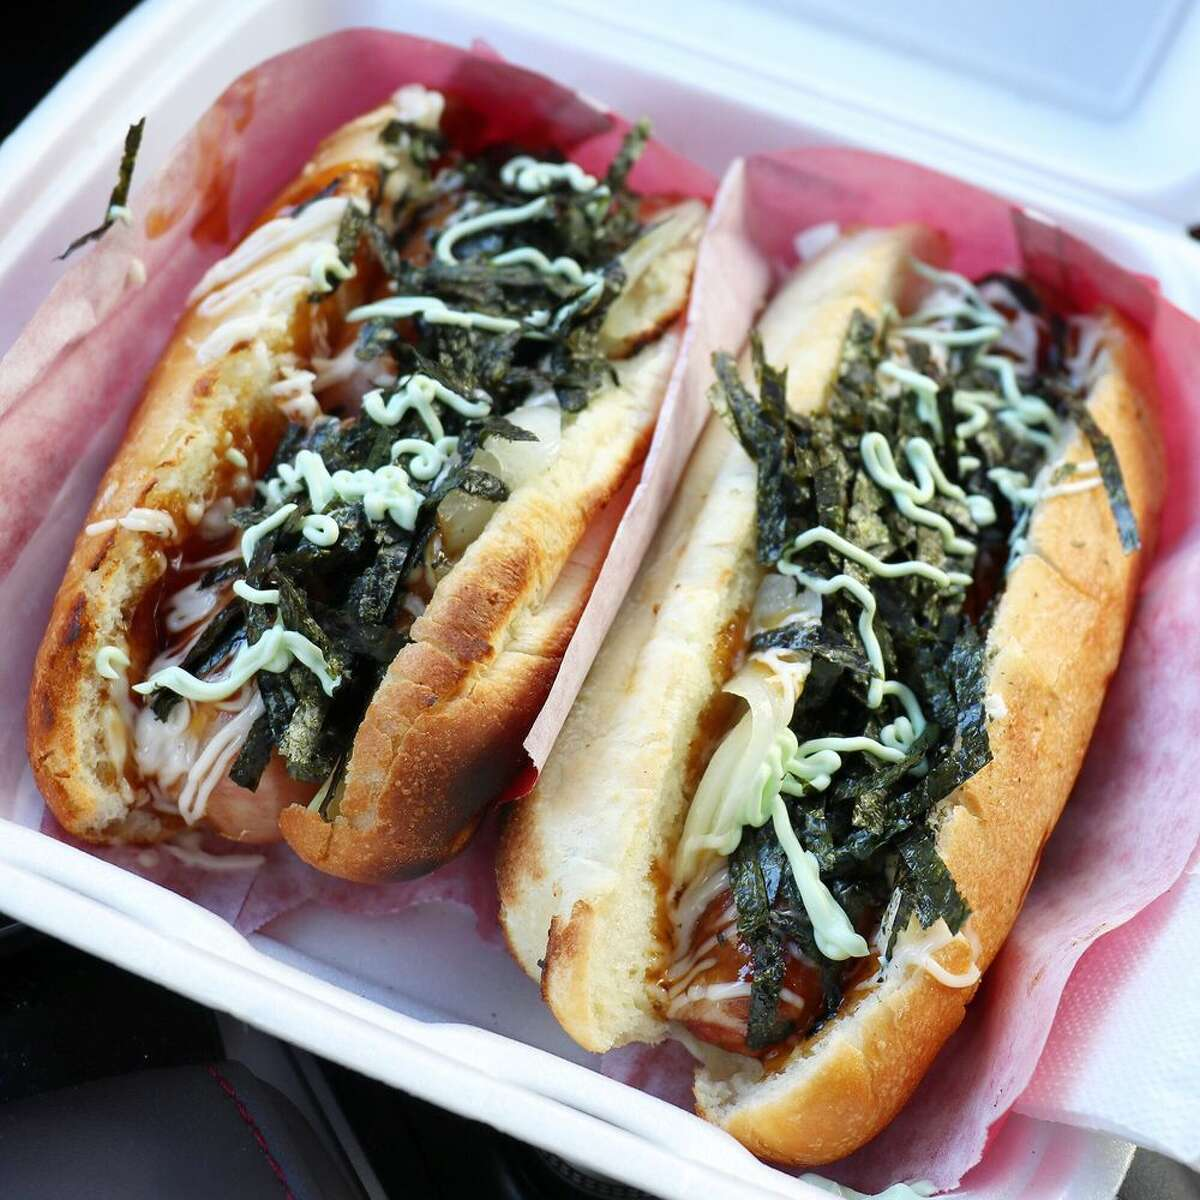 19. Vancouver, British Columbia, Canada National cuisines: 52 Japadog is not your typical street vendor. This hot dog stand crafts unique dogs with a Japanese twist to offer options like the terimayo, their signature item. It's made with teriyaki sauce, mayo and seaweed.